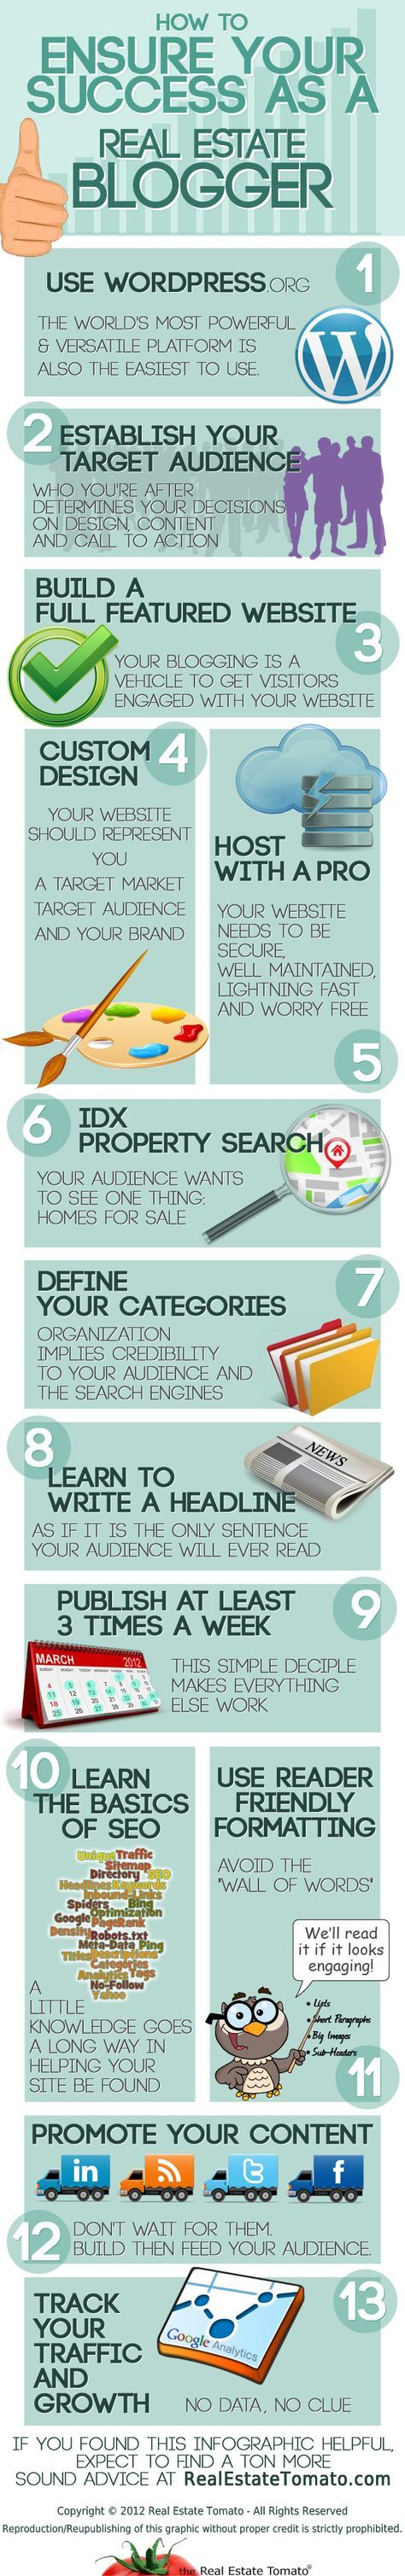 How To Ensure Your Success As A #RealEstate #Blogger –  #Infographic